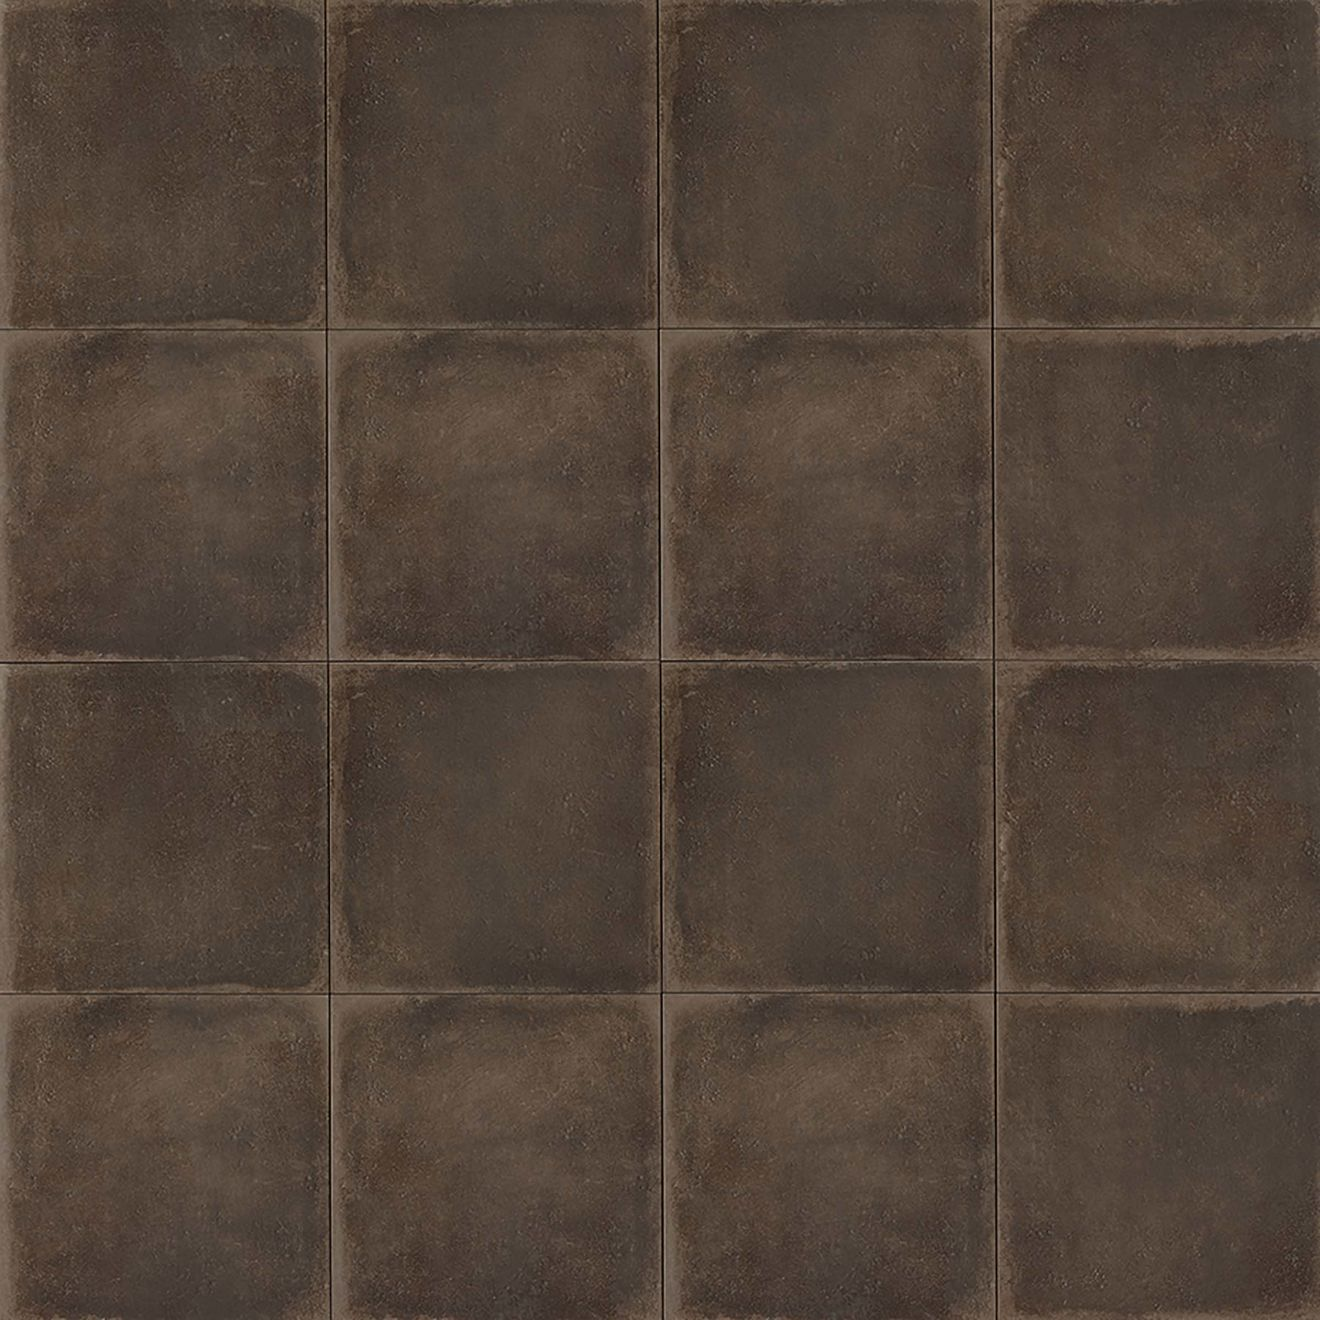 """Palazzo 12"""" x 12"""" Floor & Wall Tile in Antique Cotto"""